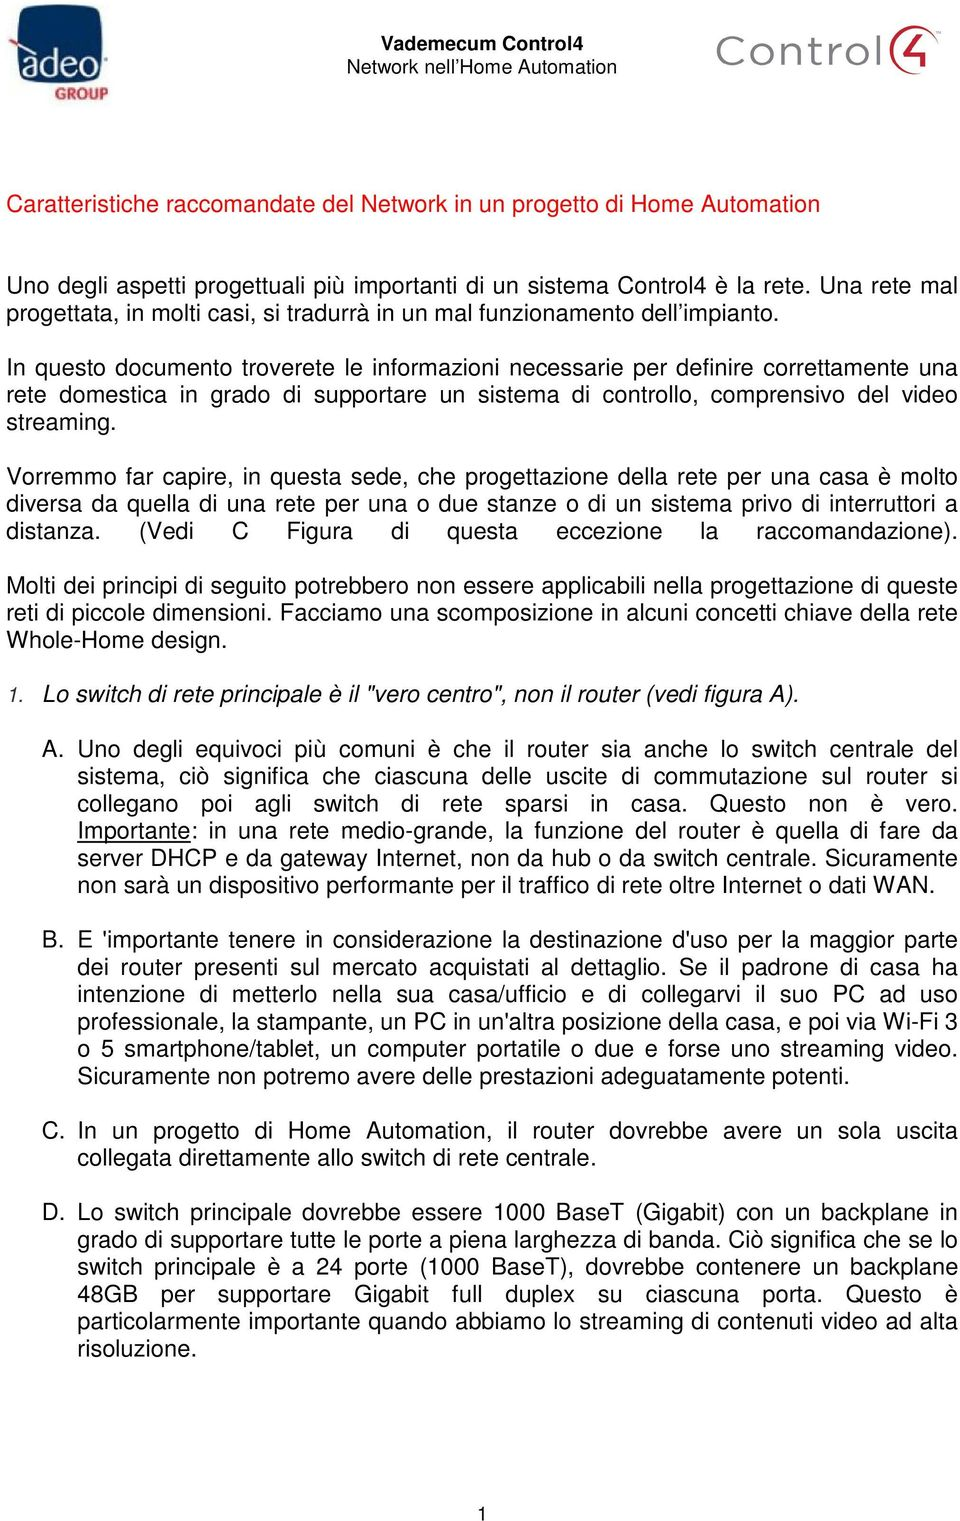 In questo documento troverete le informazioni necessarie per definire correttamente una rete domestica in grado di supportare un sistema di controllo, comprensivo del video streaming.